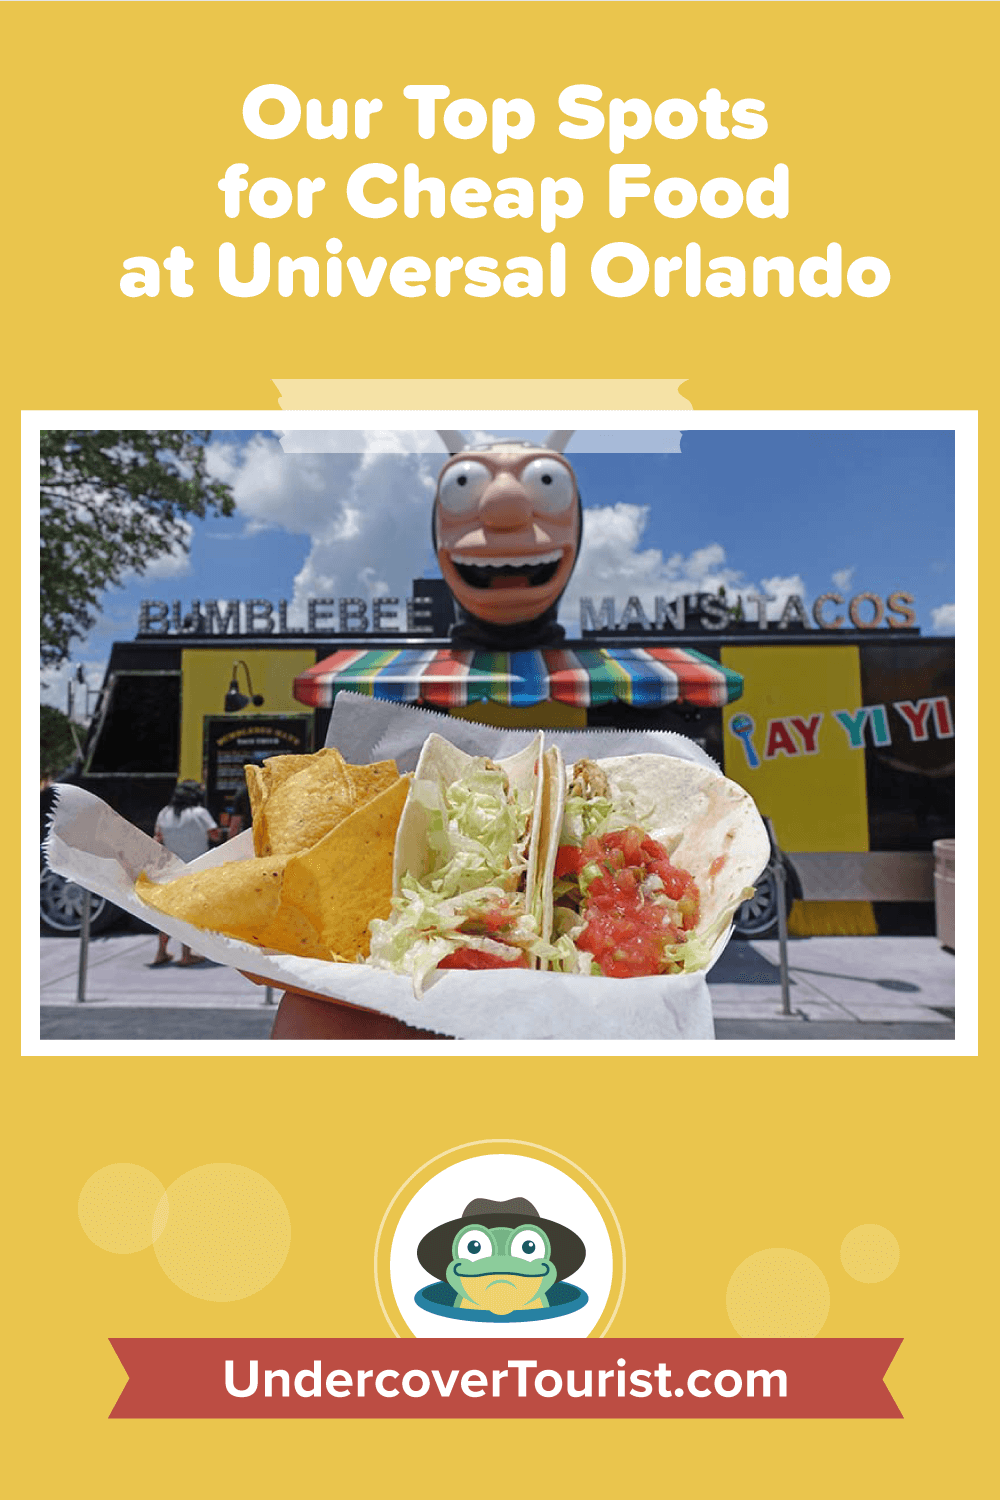 Our Top Spots for Cheap Food at Universal Orlando